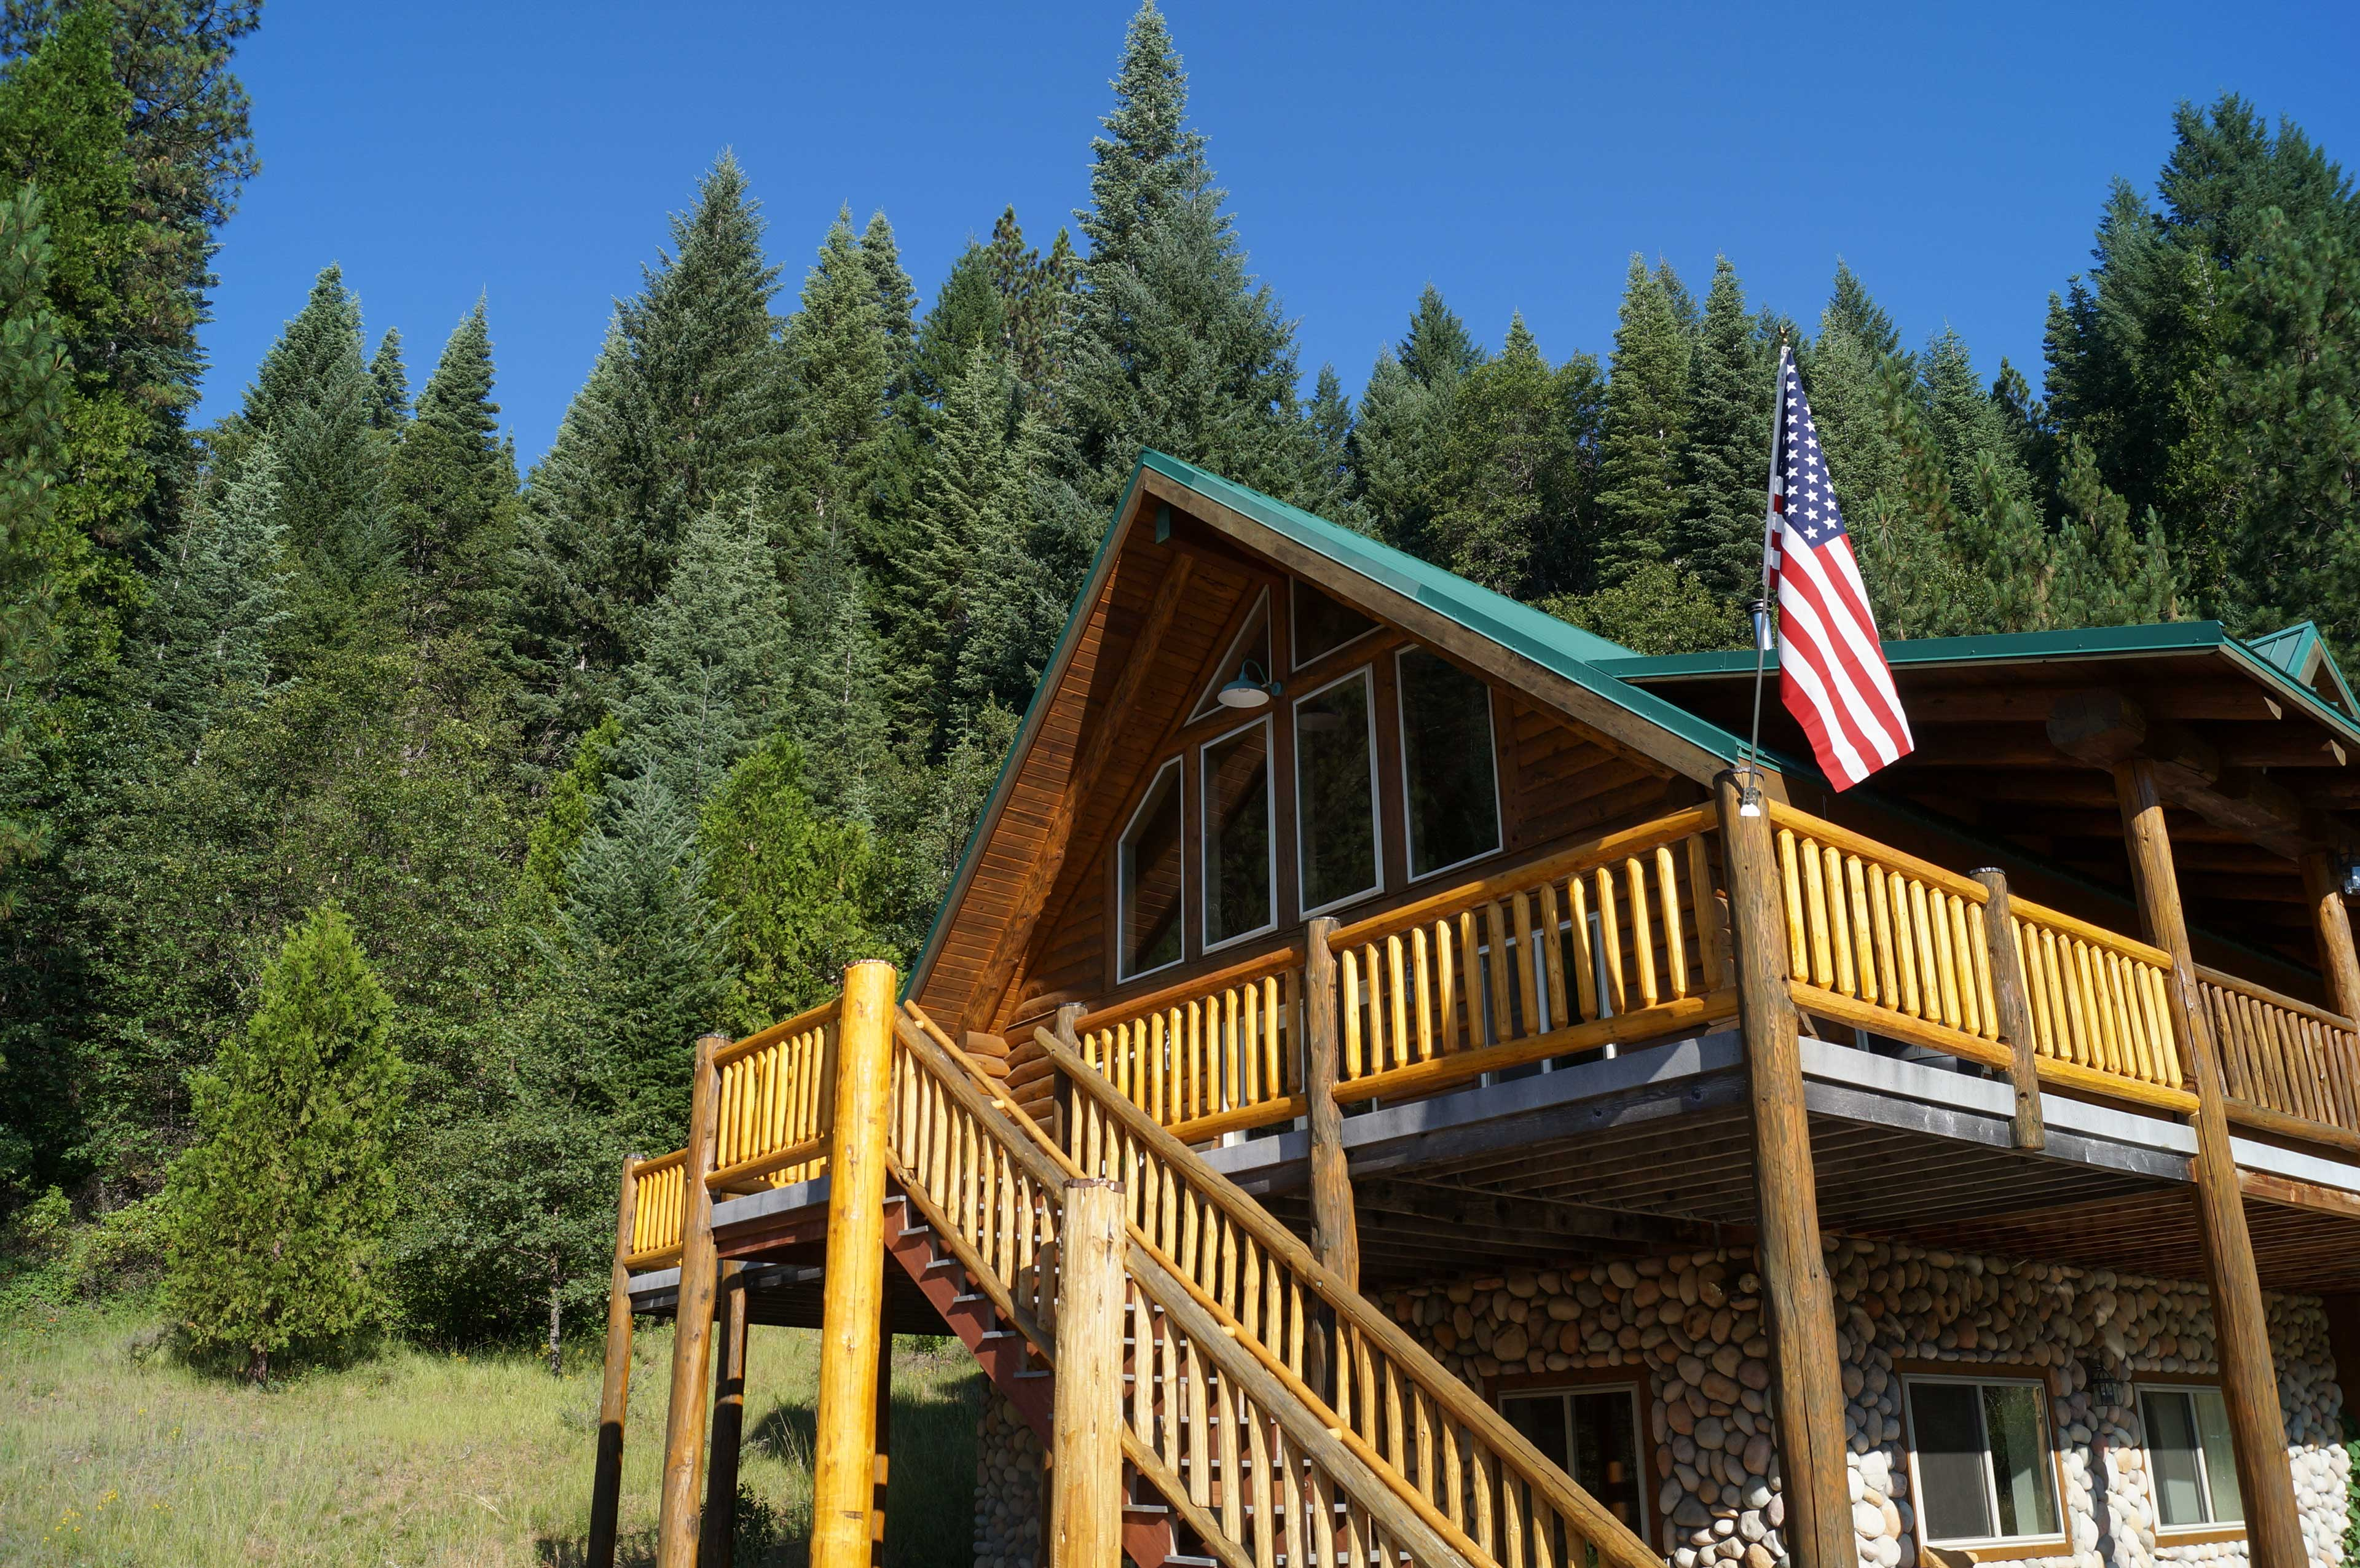 Make this property your home-away-from-home in McCloud!